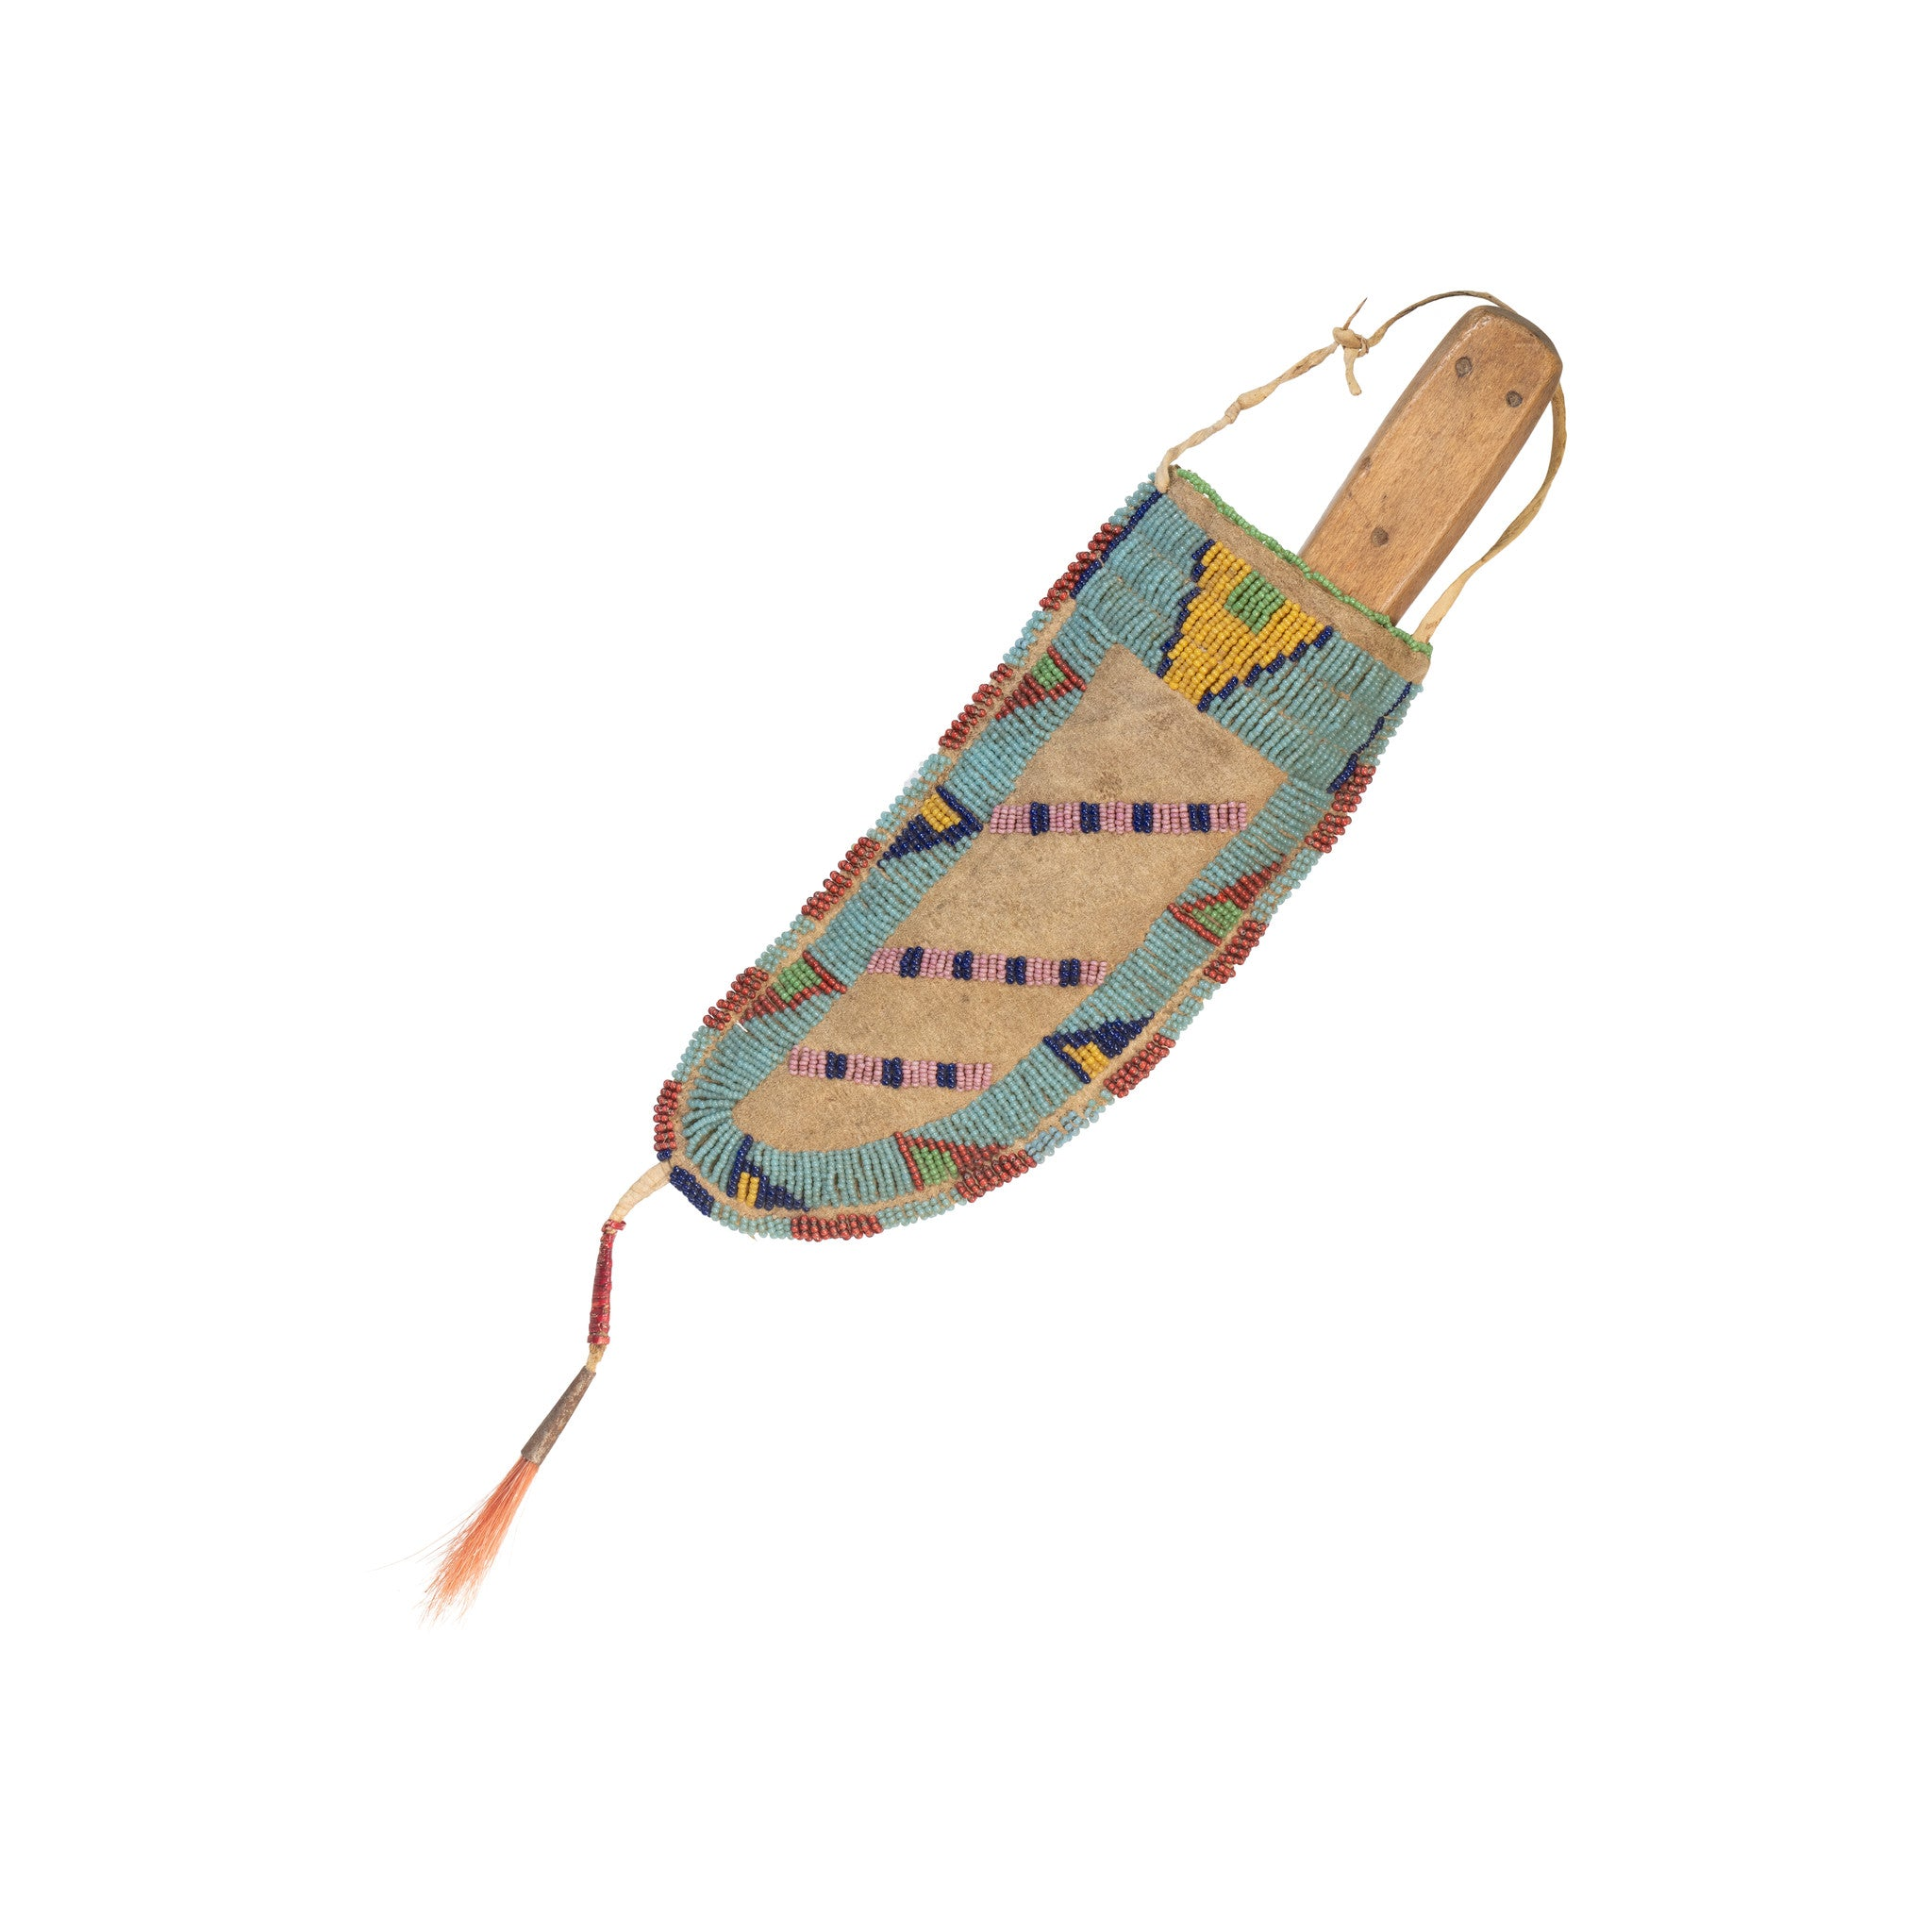 Sioux Knife Sheath american indian: weapon: knife, beadwork, green river, knife sheaths, native american - weapons, ostuw, sioux, skinning knives